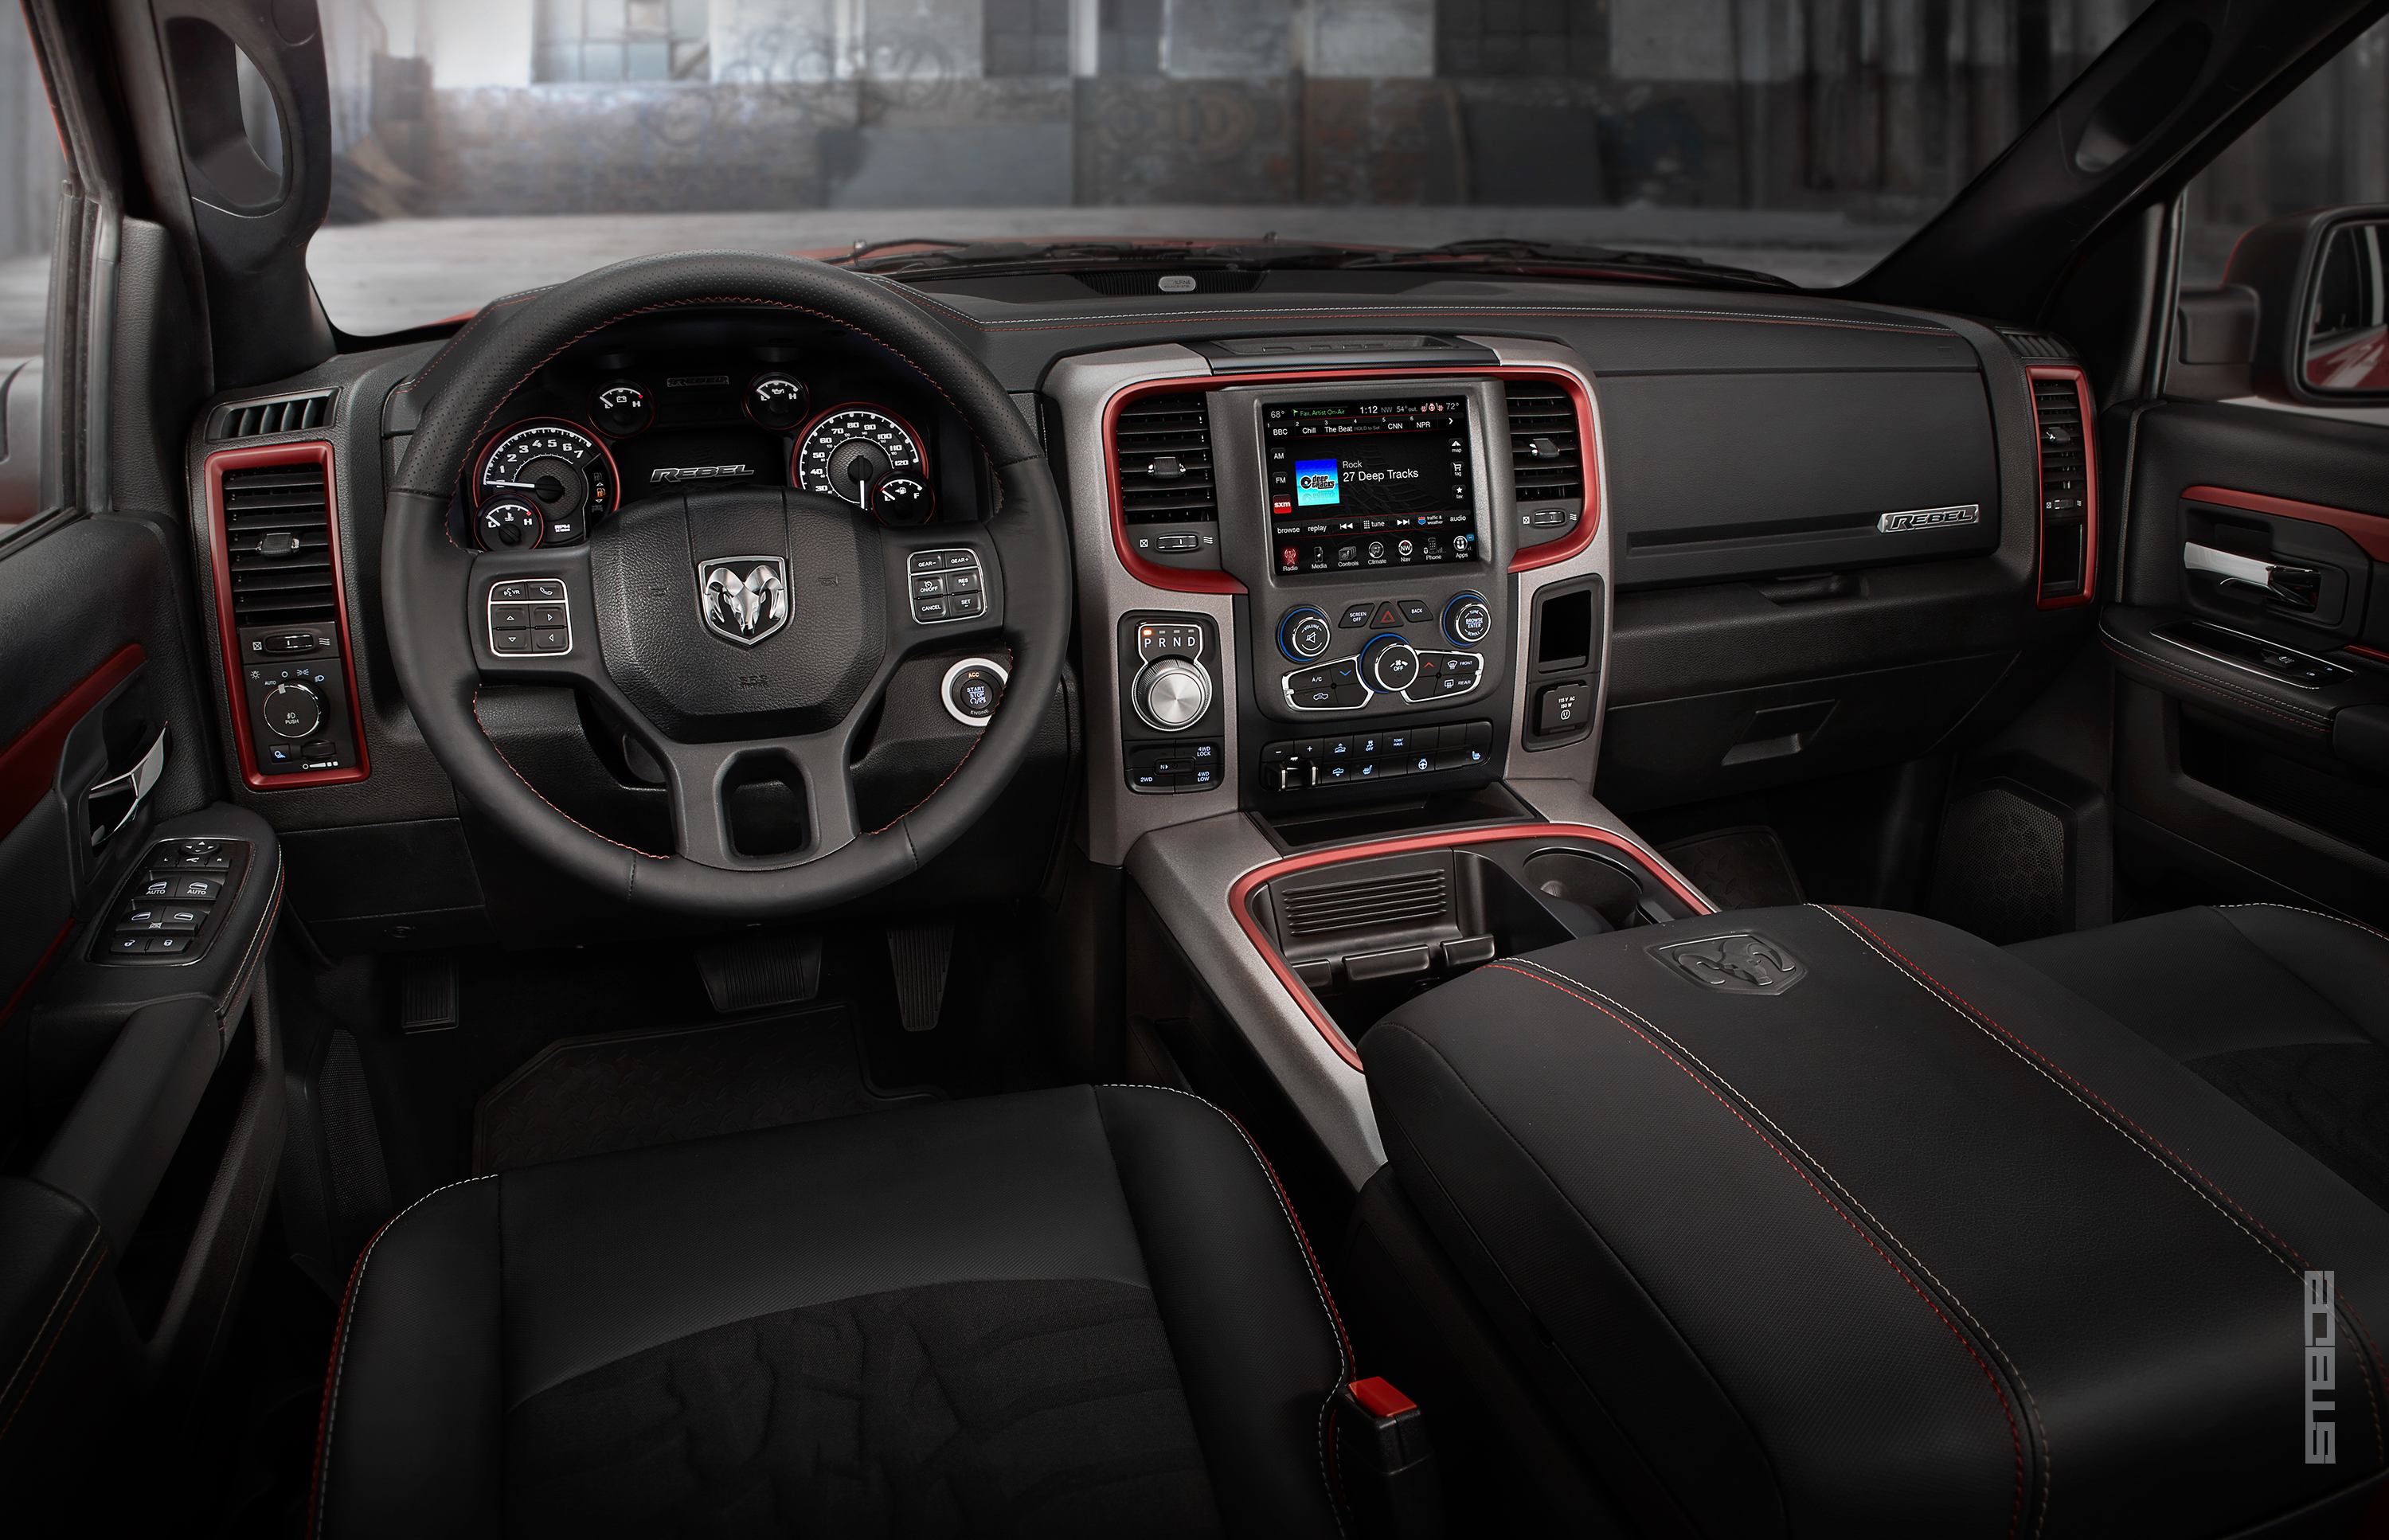 2015 Ram 1500 Rebel Crew Cab 4x4 interior